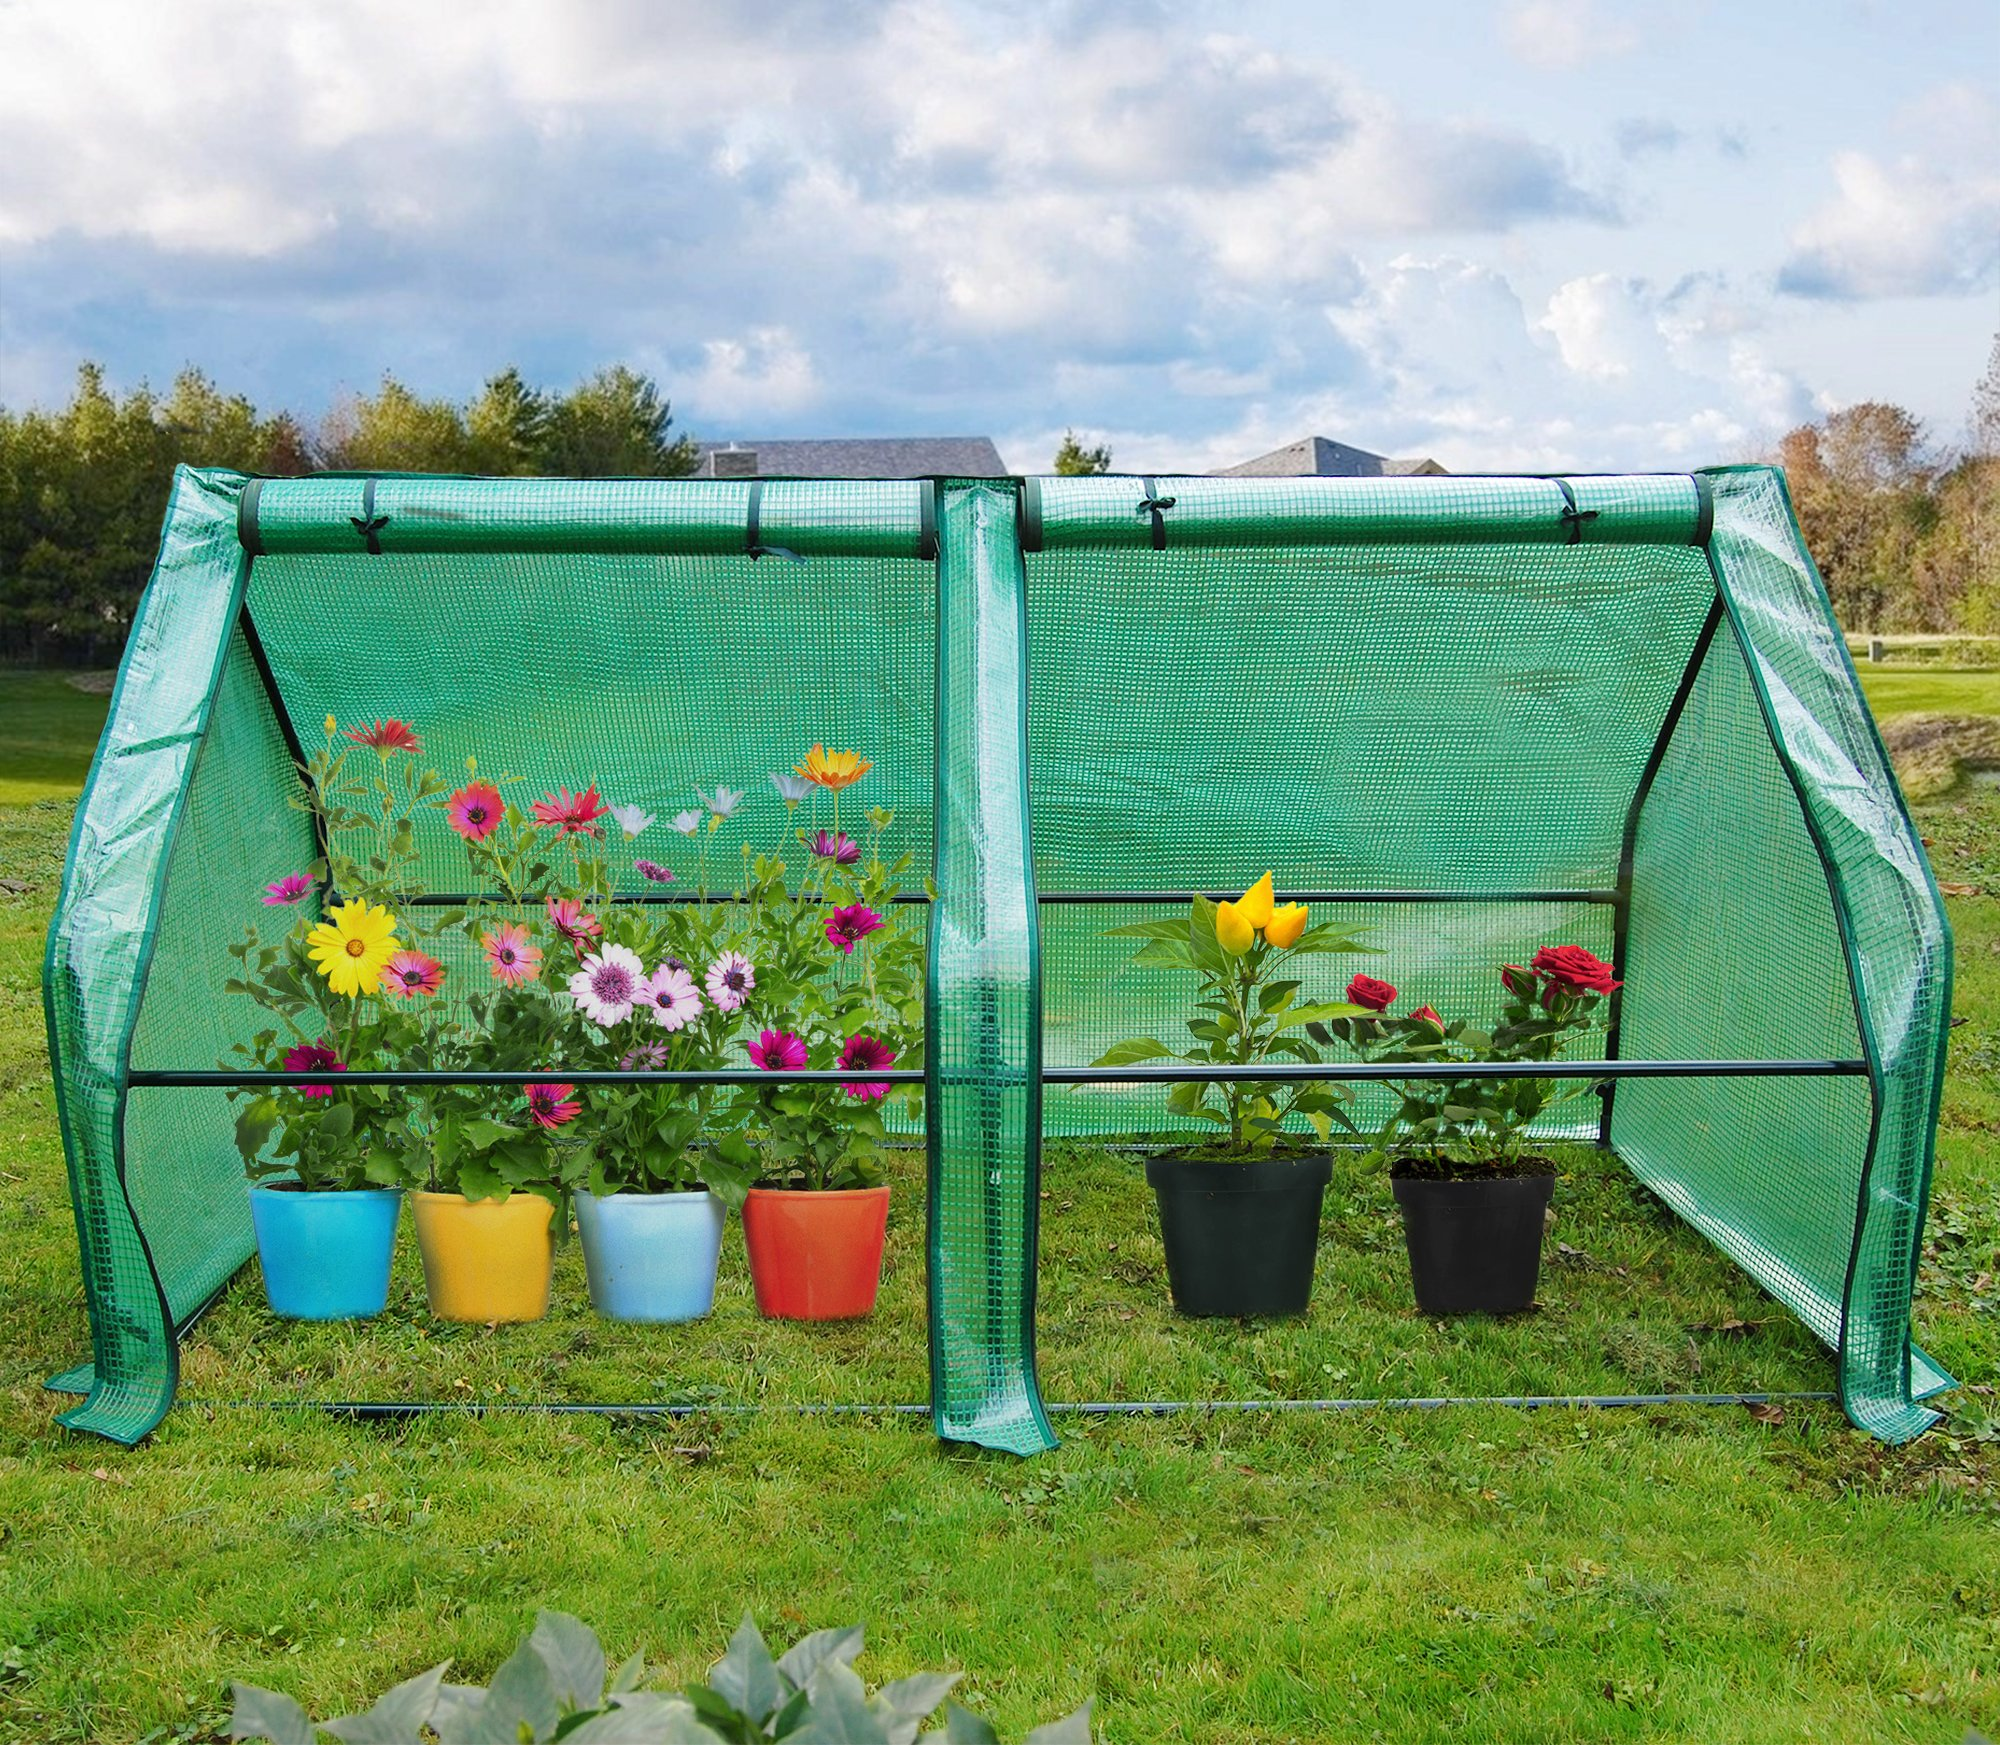 Quictent Updated Super Large Zipper Doors Mini Greenhouse Portable Cloche Green House 71'' WX 36'' D X 36'' H - 50 Pcs T-Type Plant Tags Included